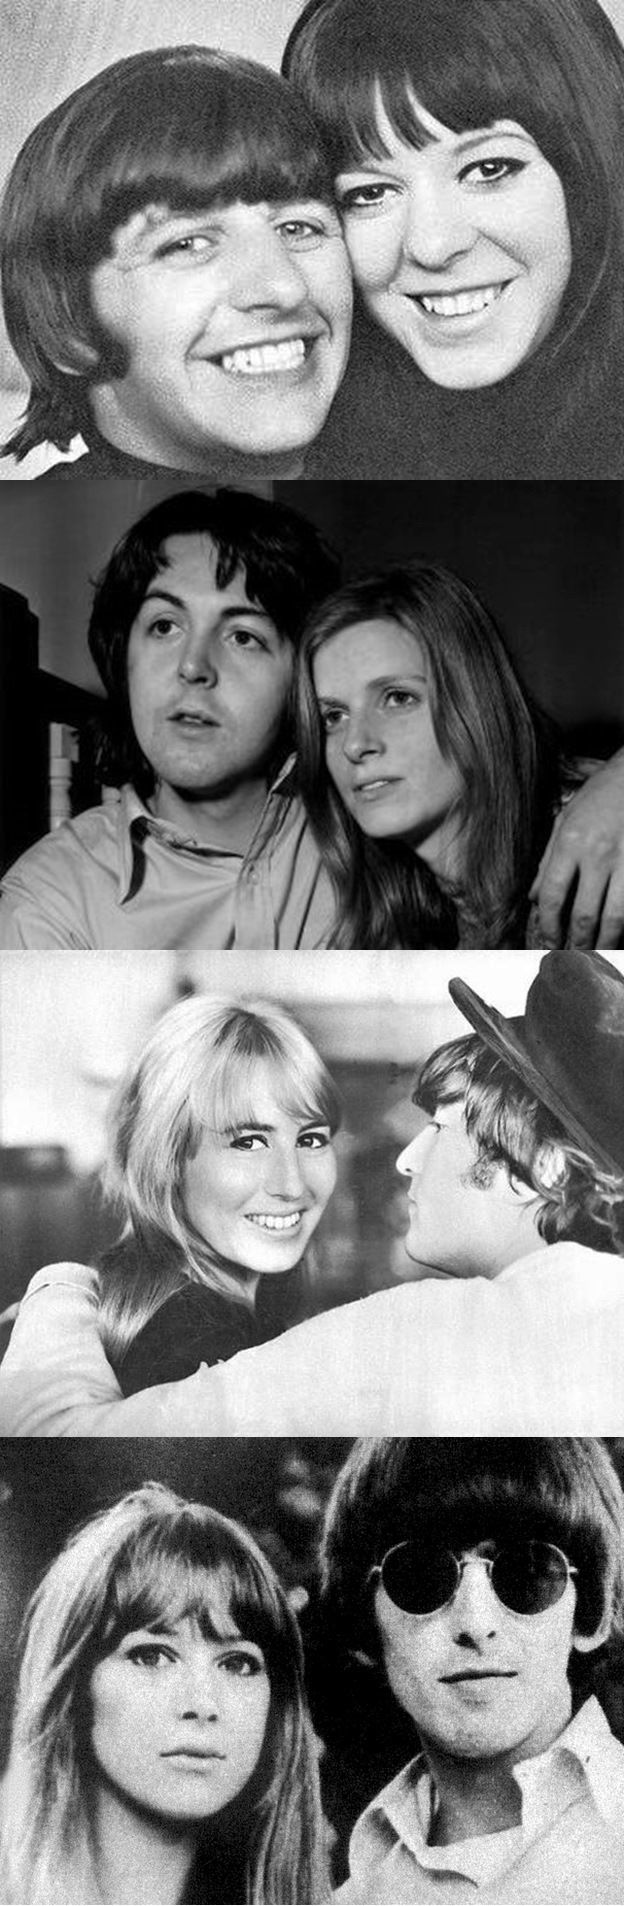 The Beatles And Their First Wives ~ Ringo & Maureen ~ Paul And Linda ~ John & Cynthia & George & Pattie